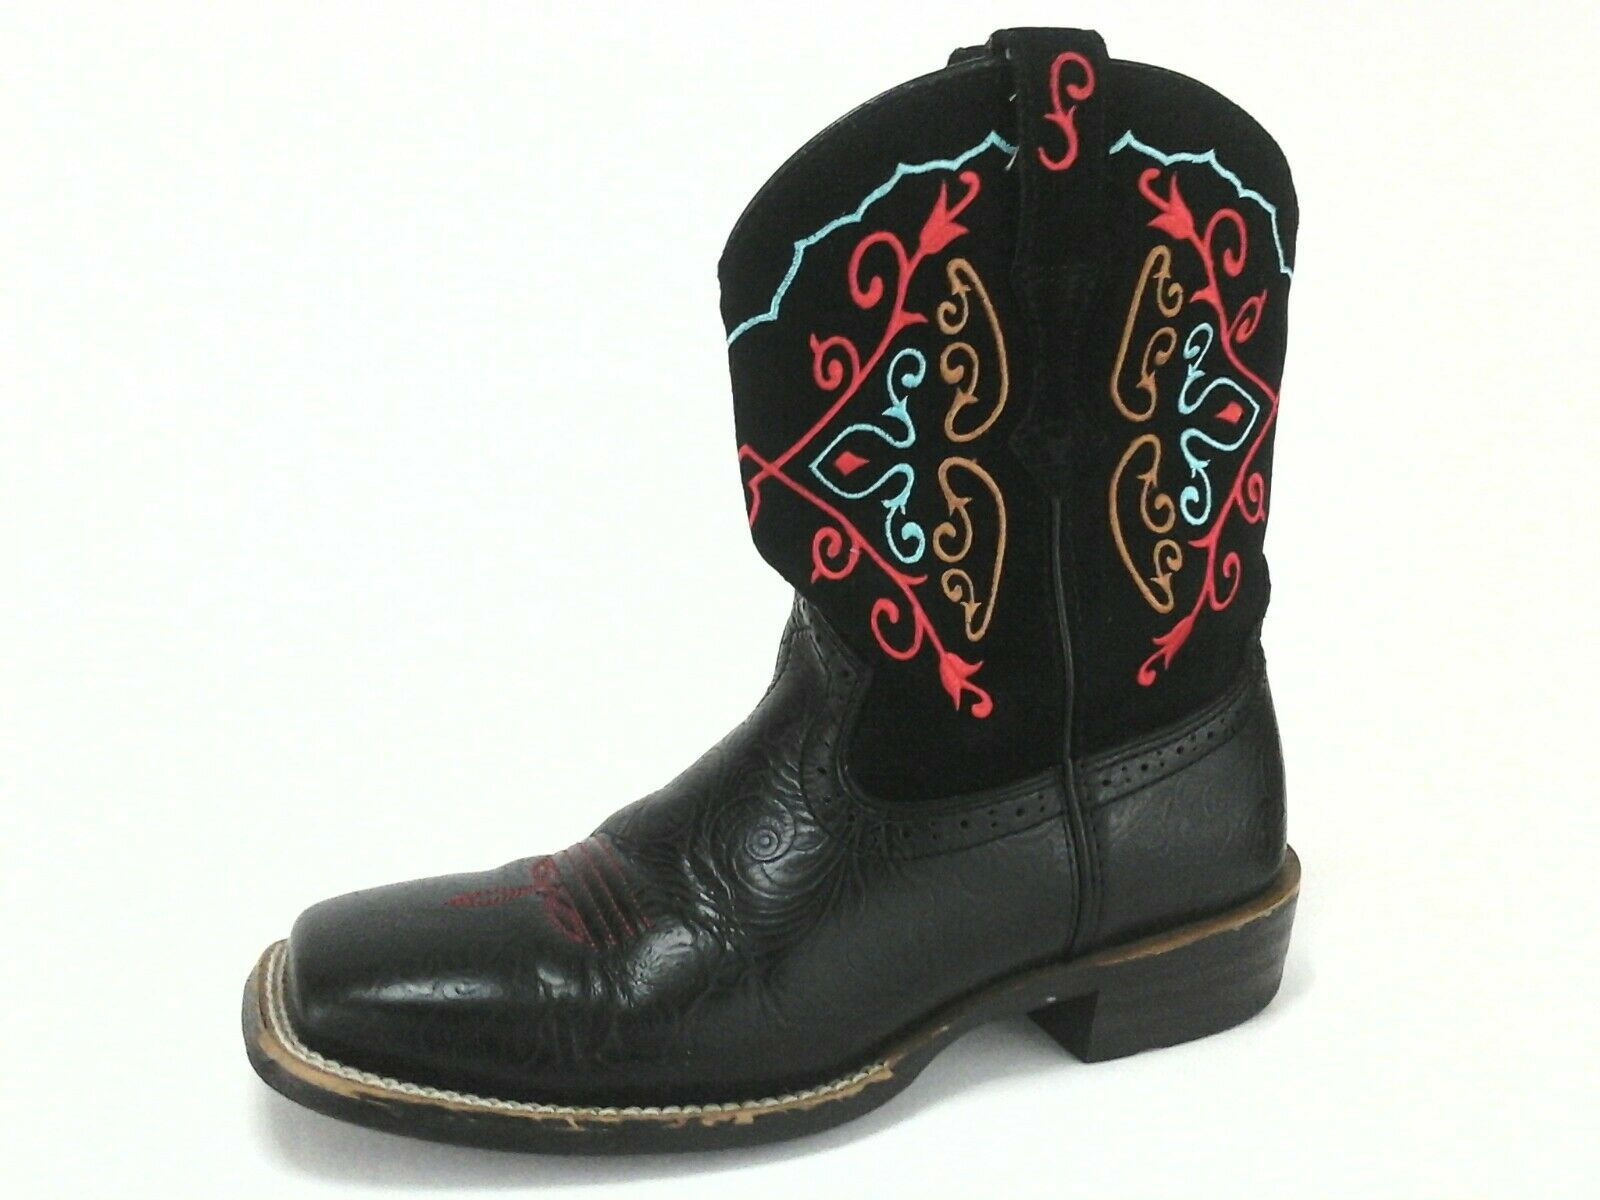 ARIAT Western Boots Fatbaby Cowboy Black Leather Embroidered Floral Womens 8/39